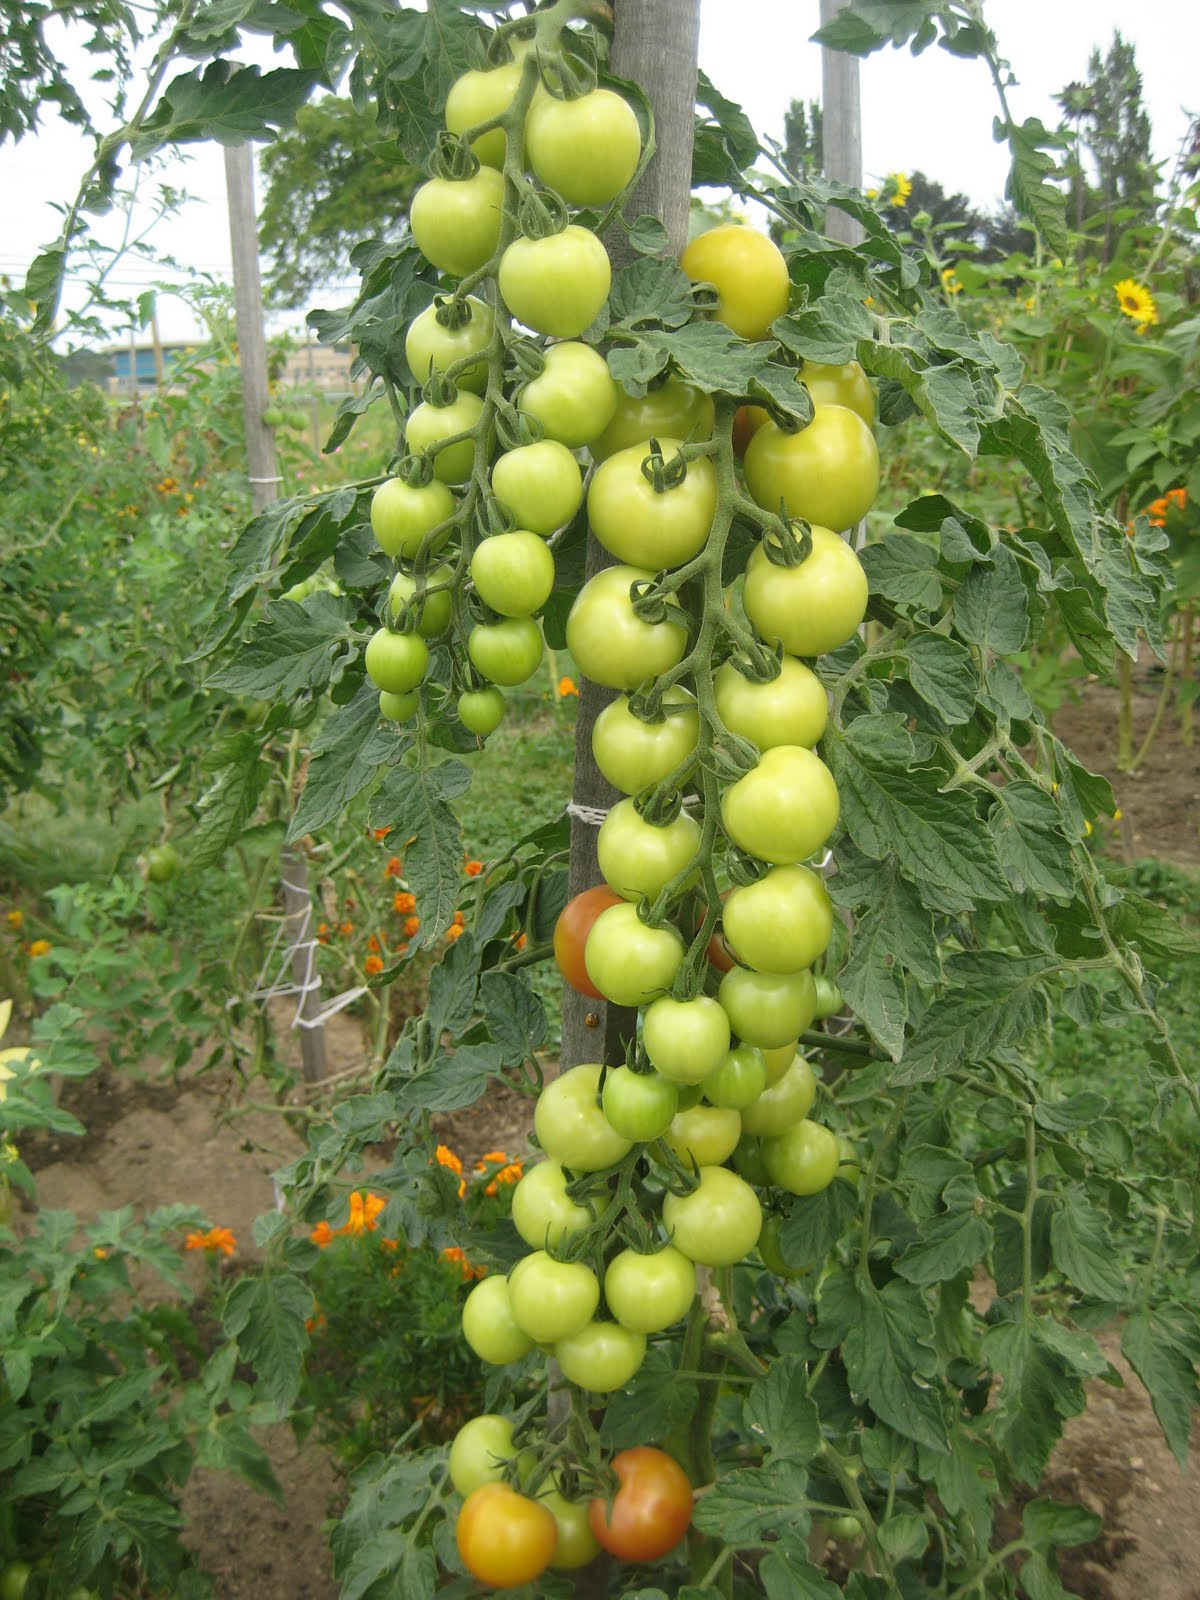 How to plant tomatoes in a garden - How To Plant Tomatoes In A Garden 8